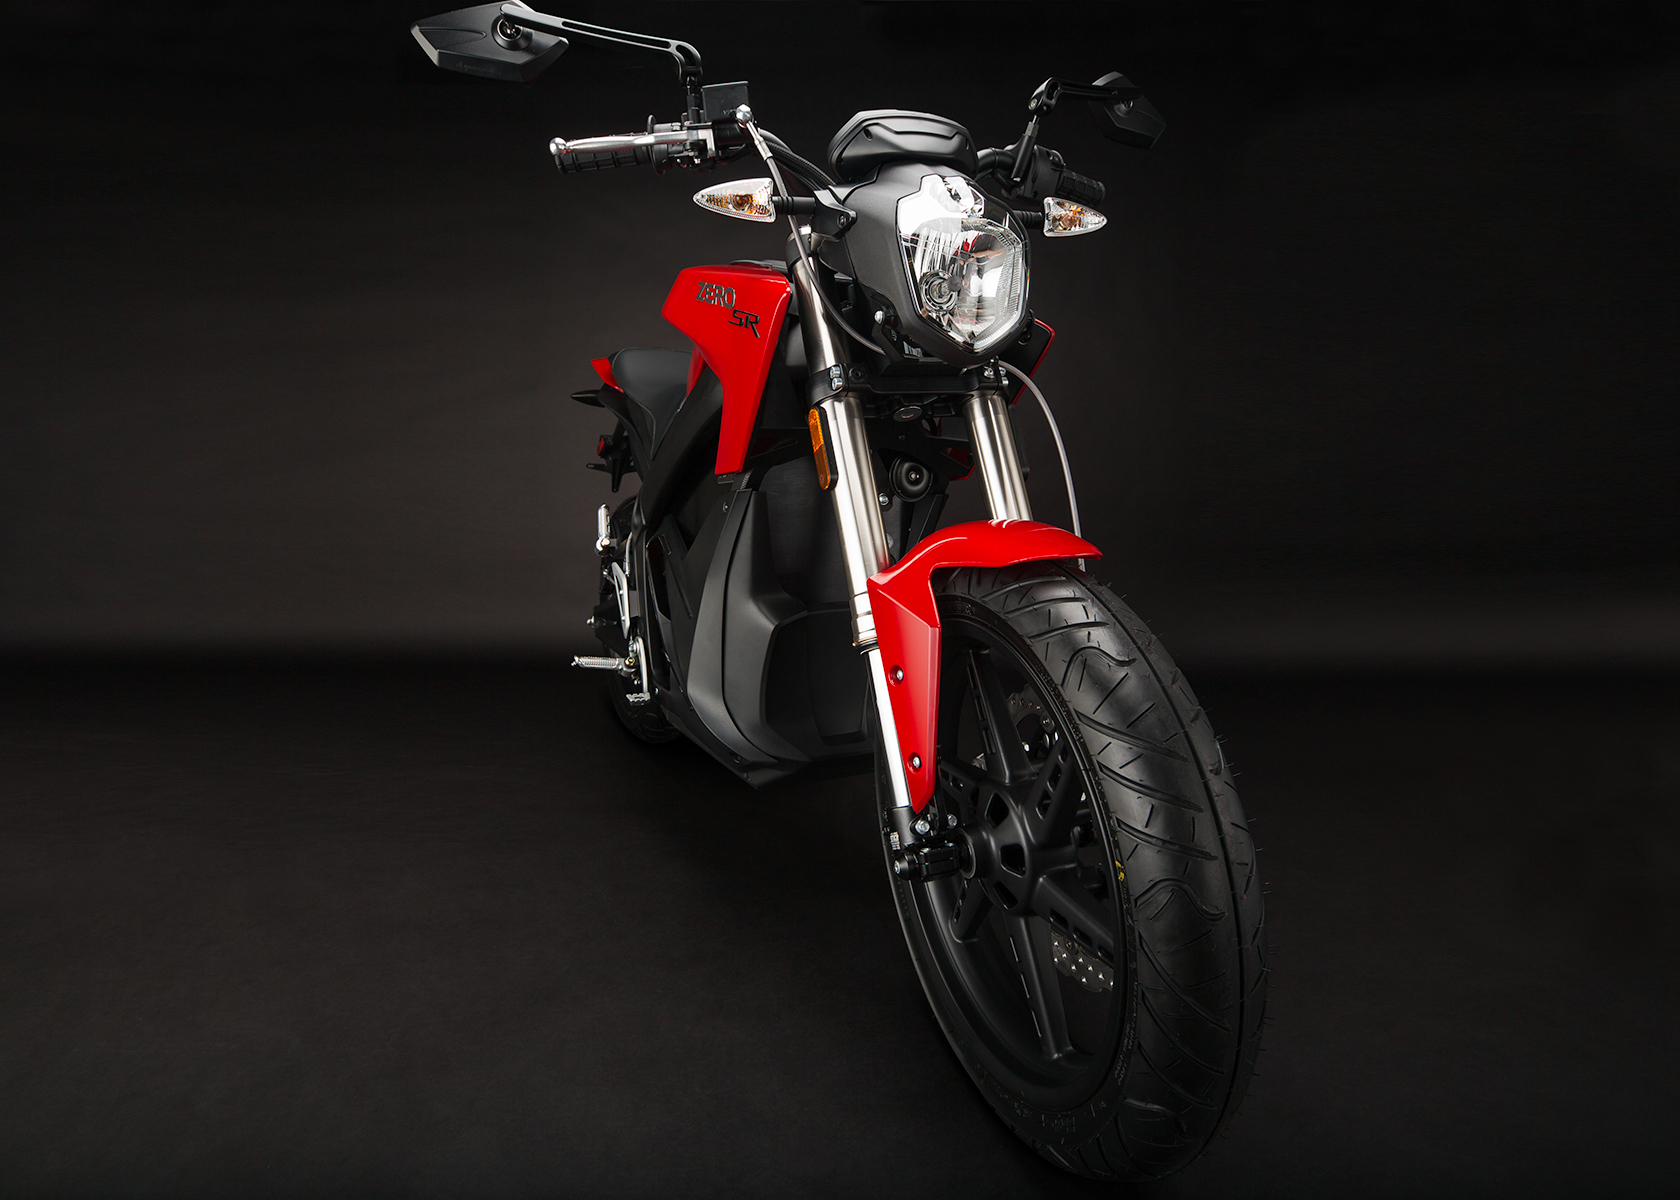 2014 Zero SR Electric Motorcycle: Front Fork